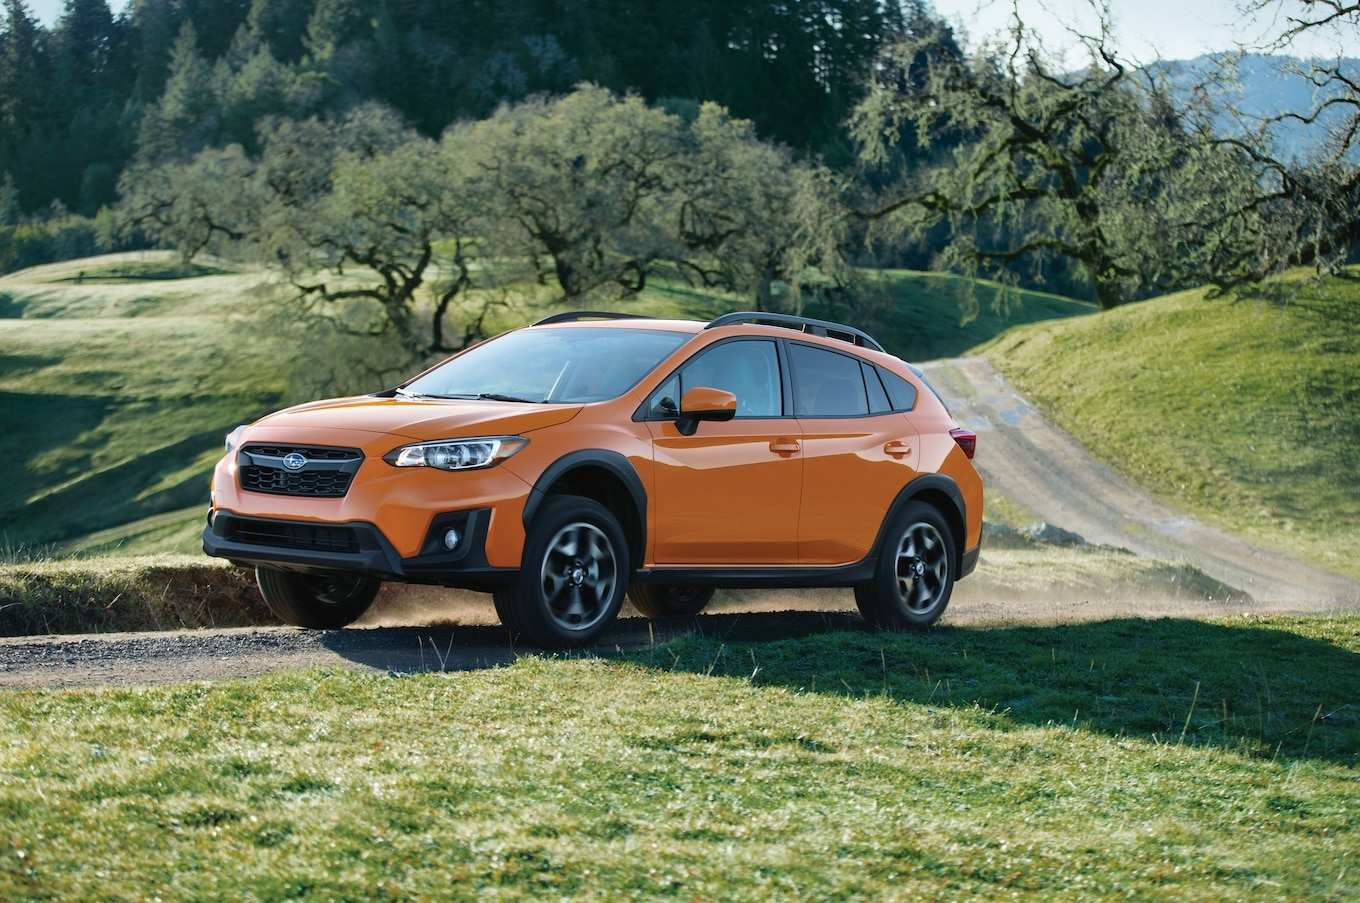 11 New 2019 Subaru Crosstrek Review Price And Release Date New Concept with 2019 Subaru Crosstrek Review Price And Release Date